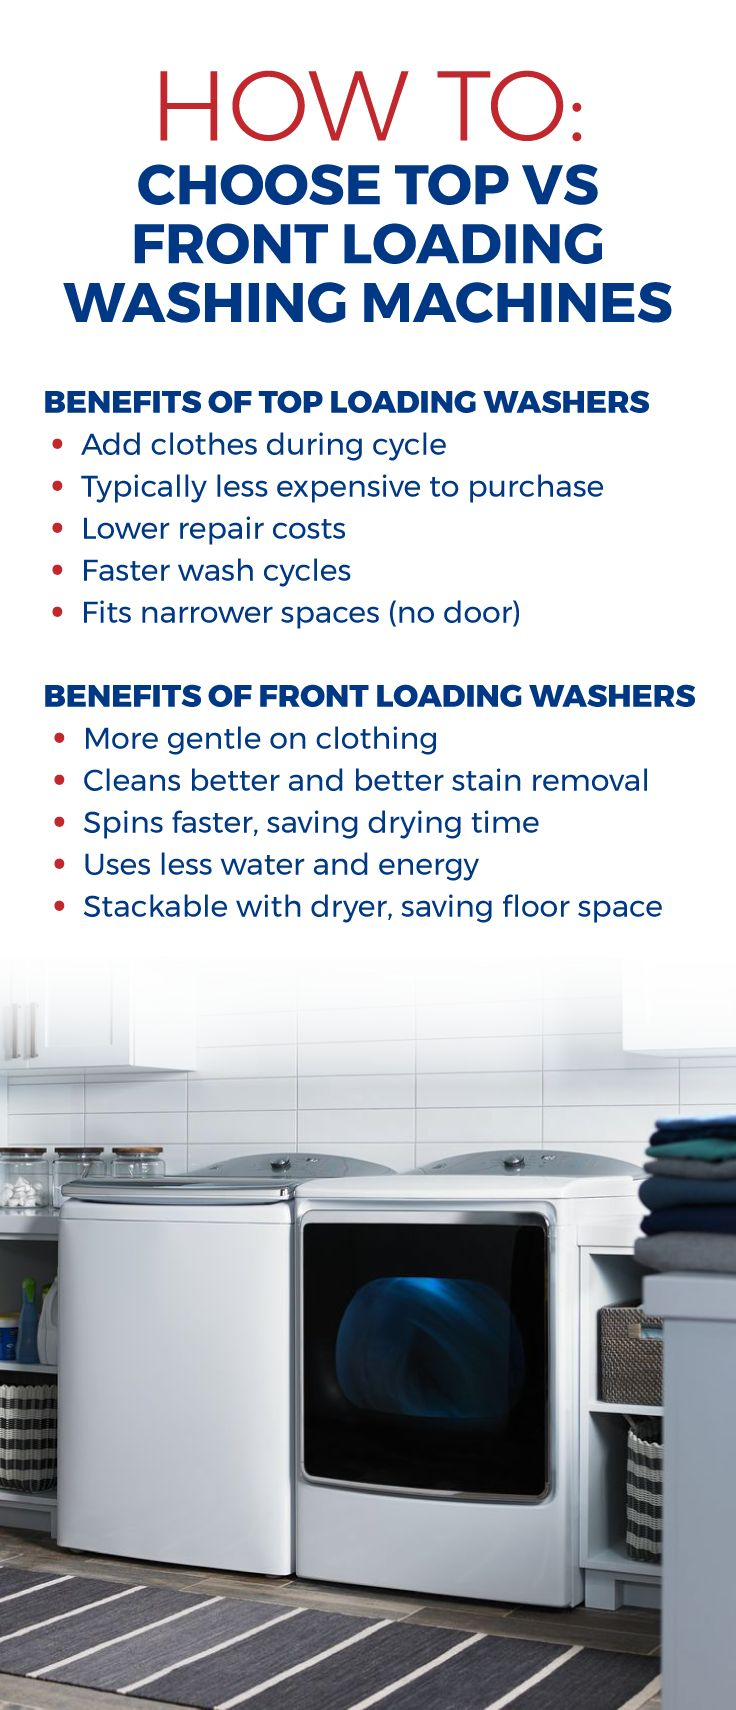 Keep these features in mind when shopping for front or top loading washing machines. Save up to 70% on the laundry units that fit your family's needs, online and in stores at Sears Outlet.